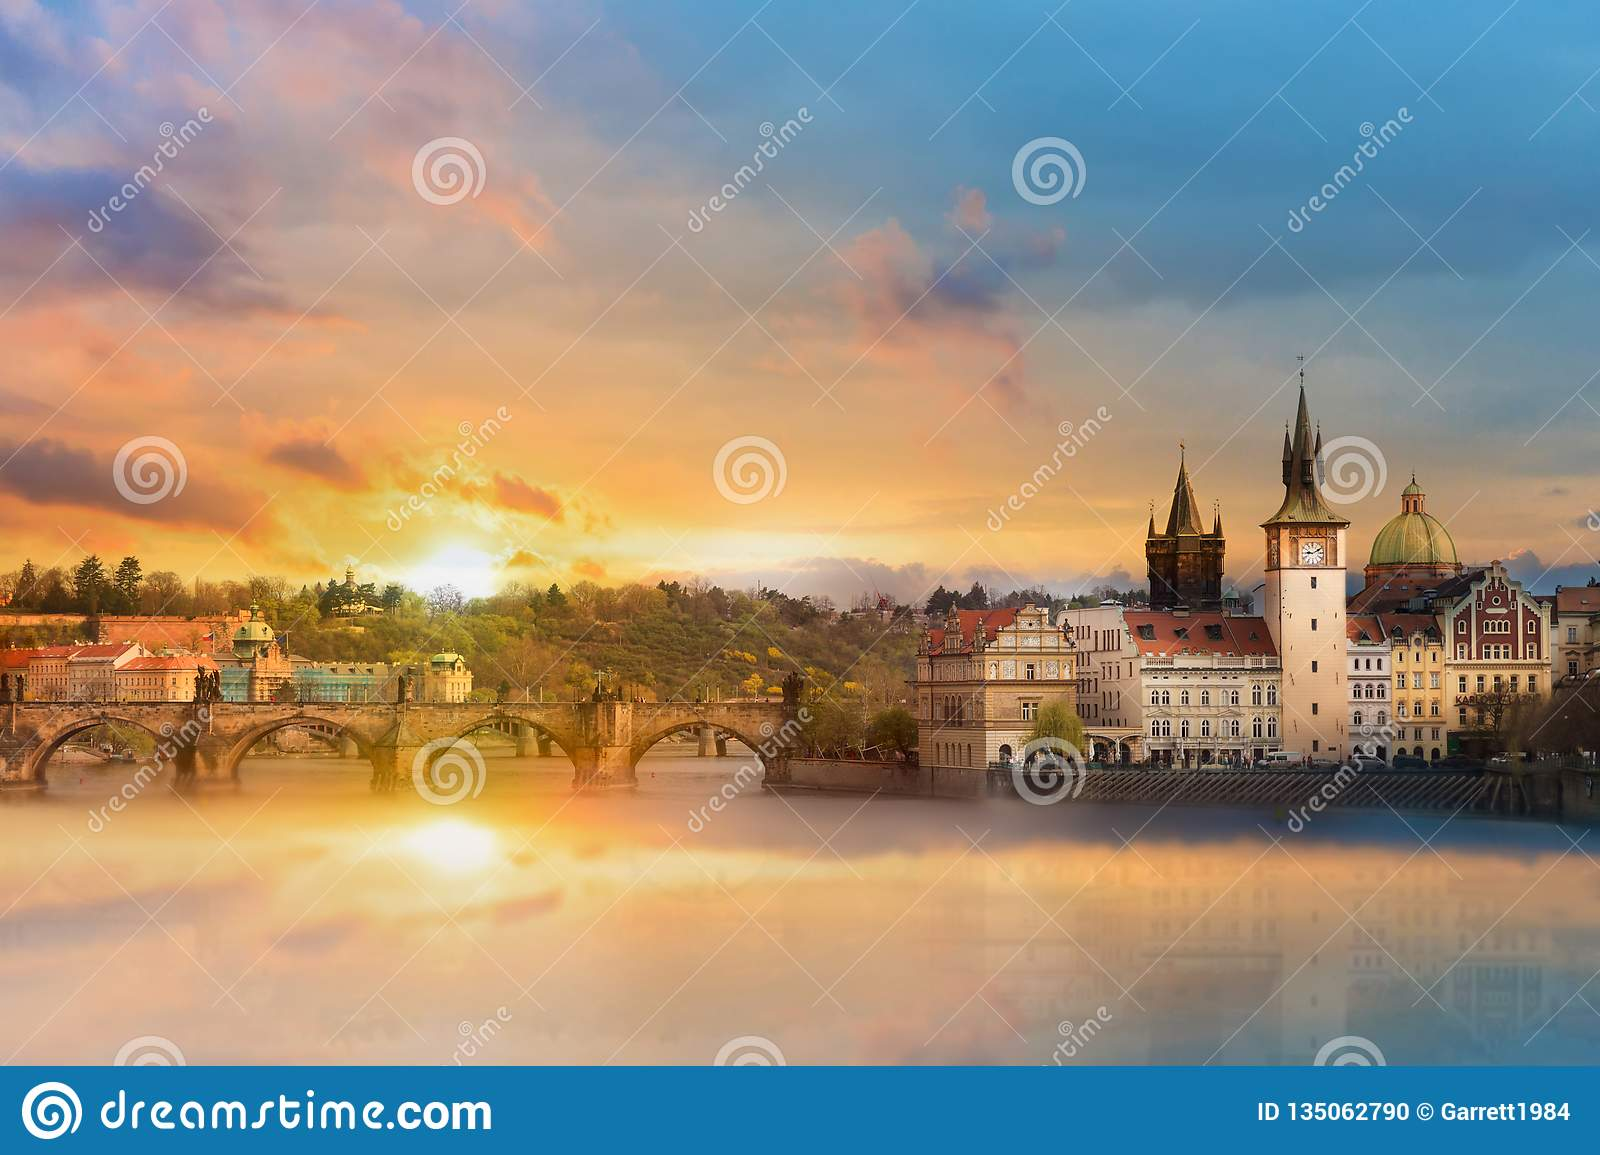 Scenic summer view of the Old Town buildings, Charles bridge and Vltava river in Prague during amazing sunset, Czech Republic